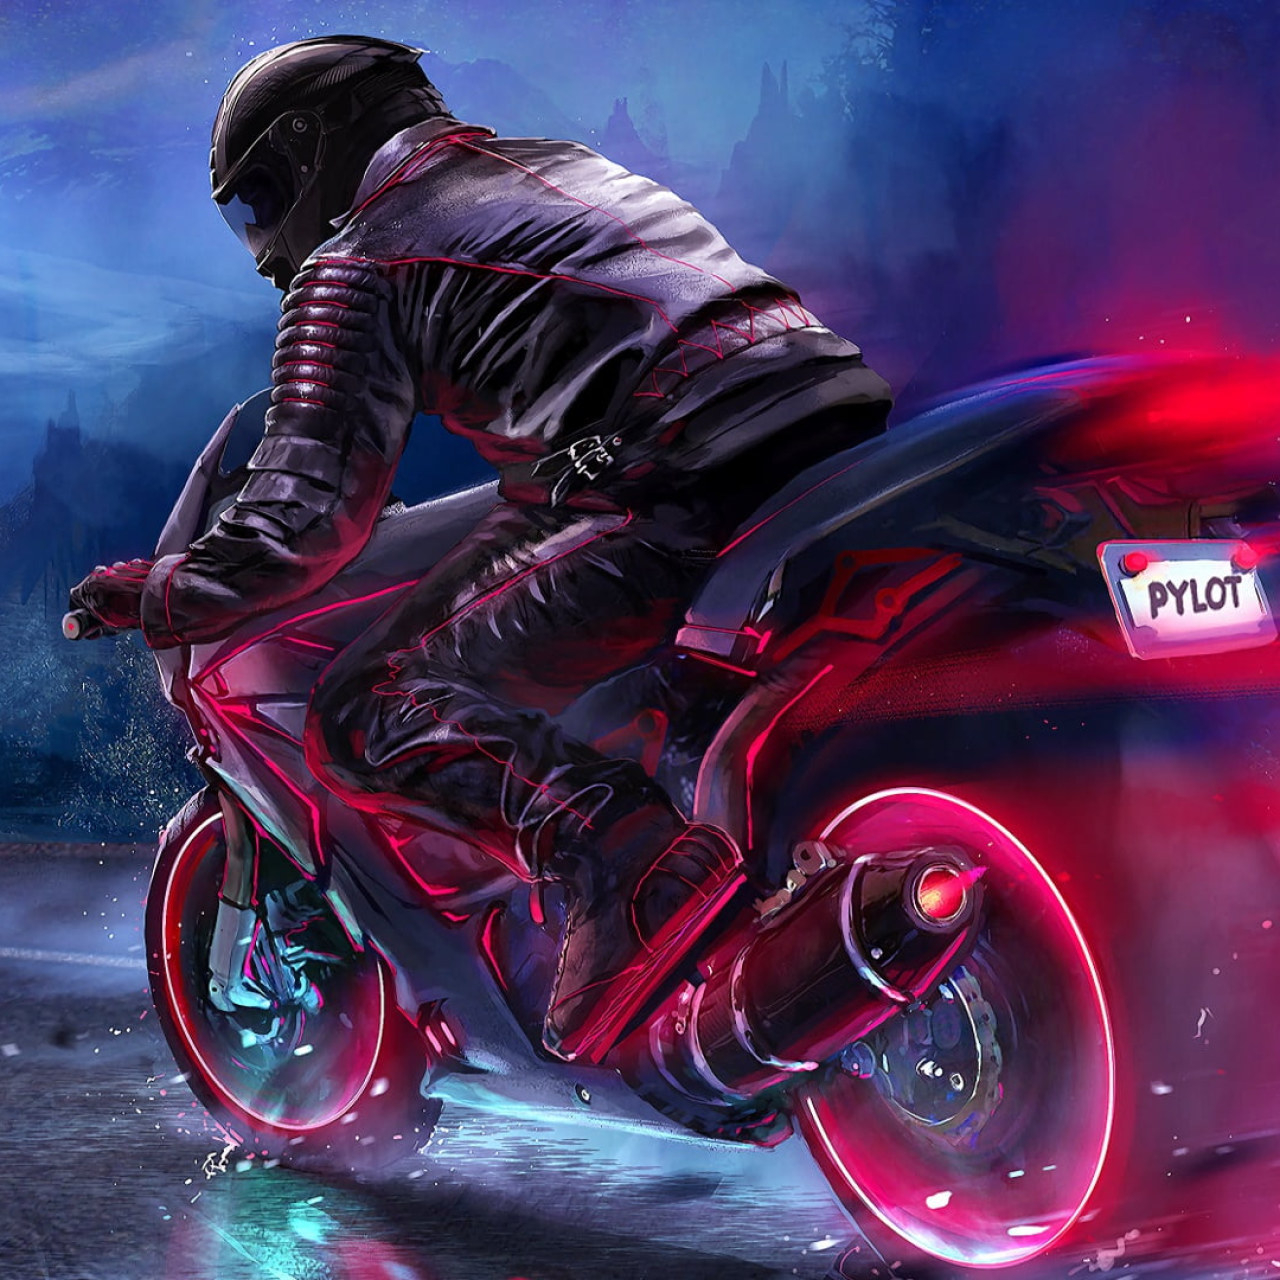 motorcycle wallpaper x1280